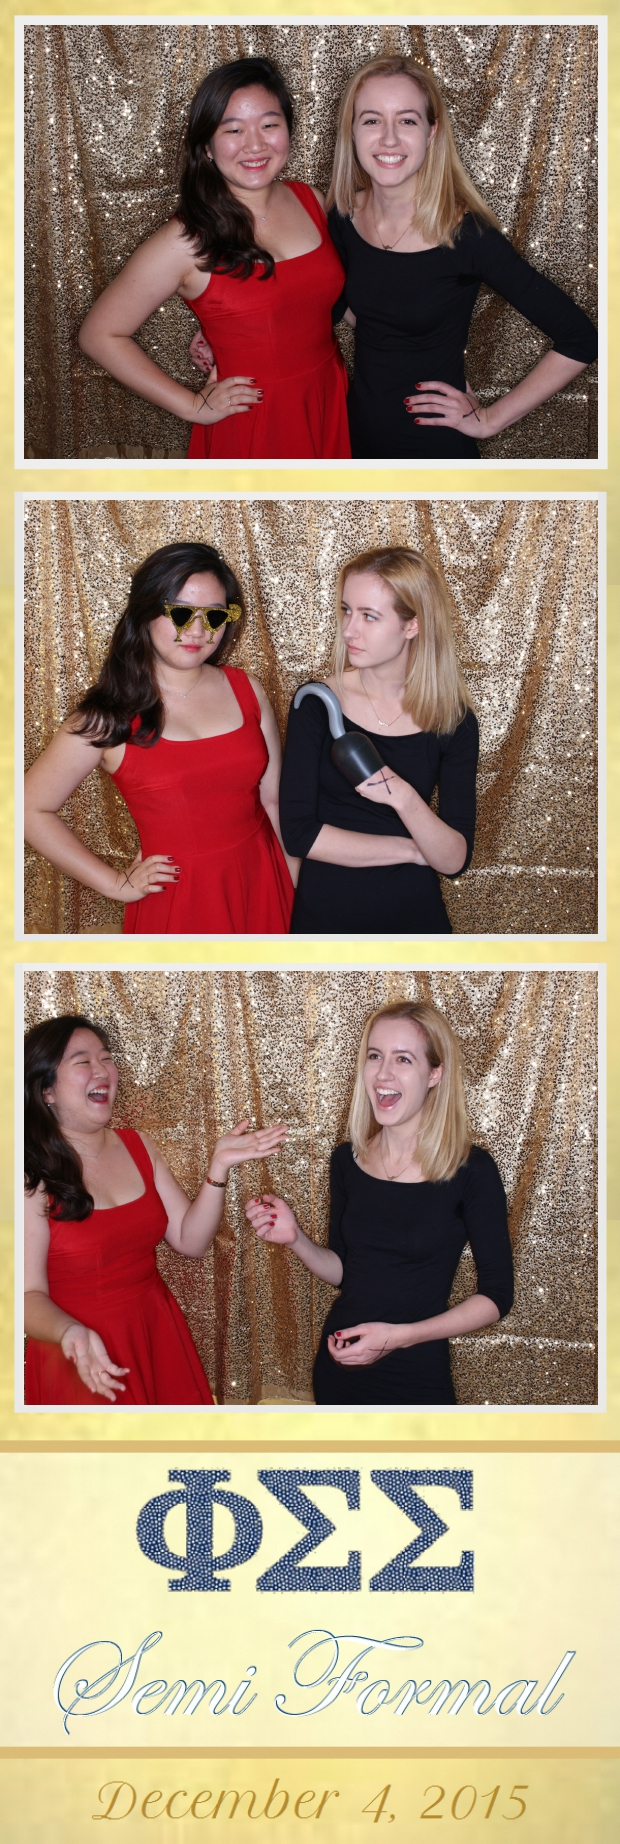 Guest House Events Photo Booth Phi Sigma Sigma Semi Formal (5).jpg